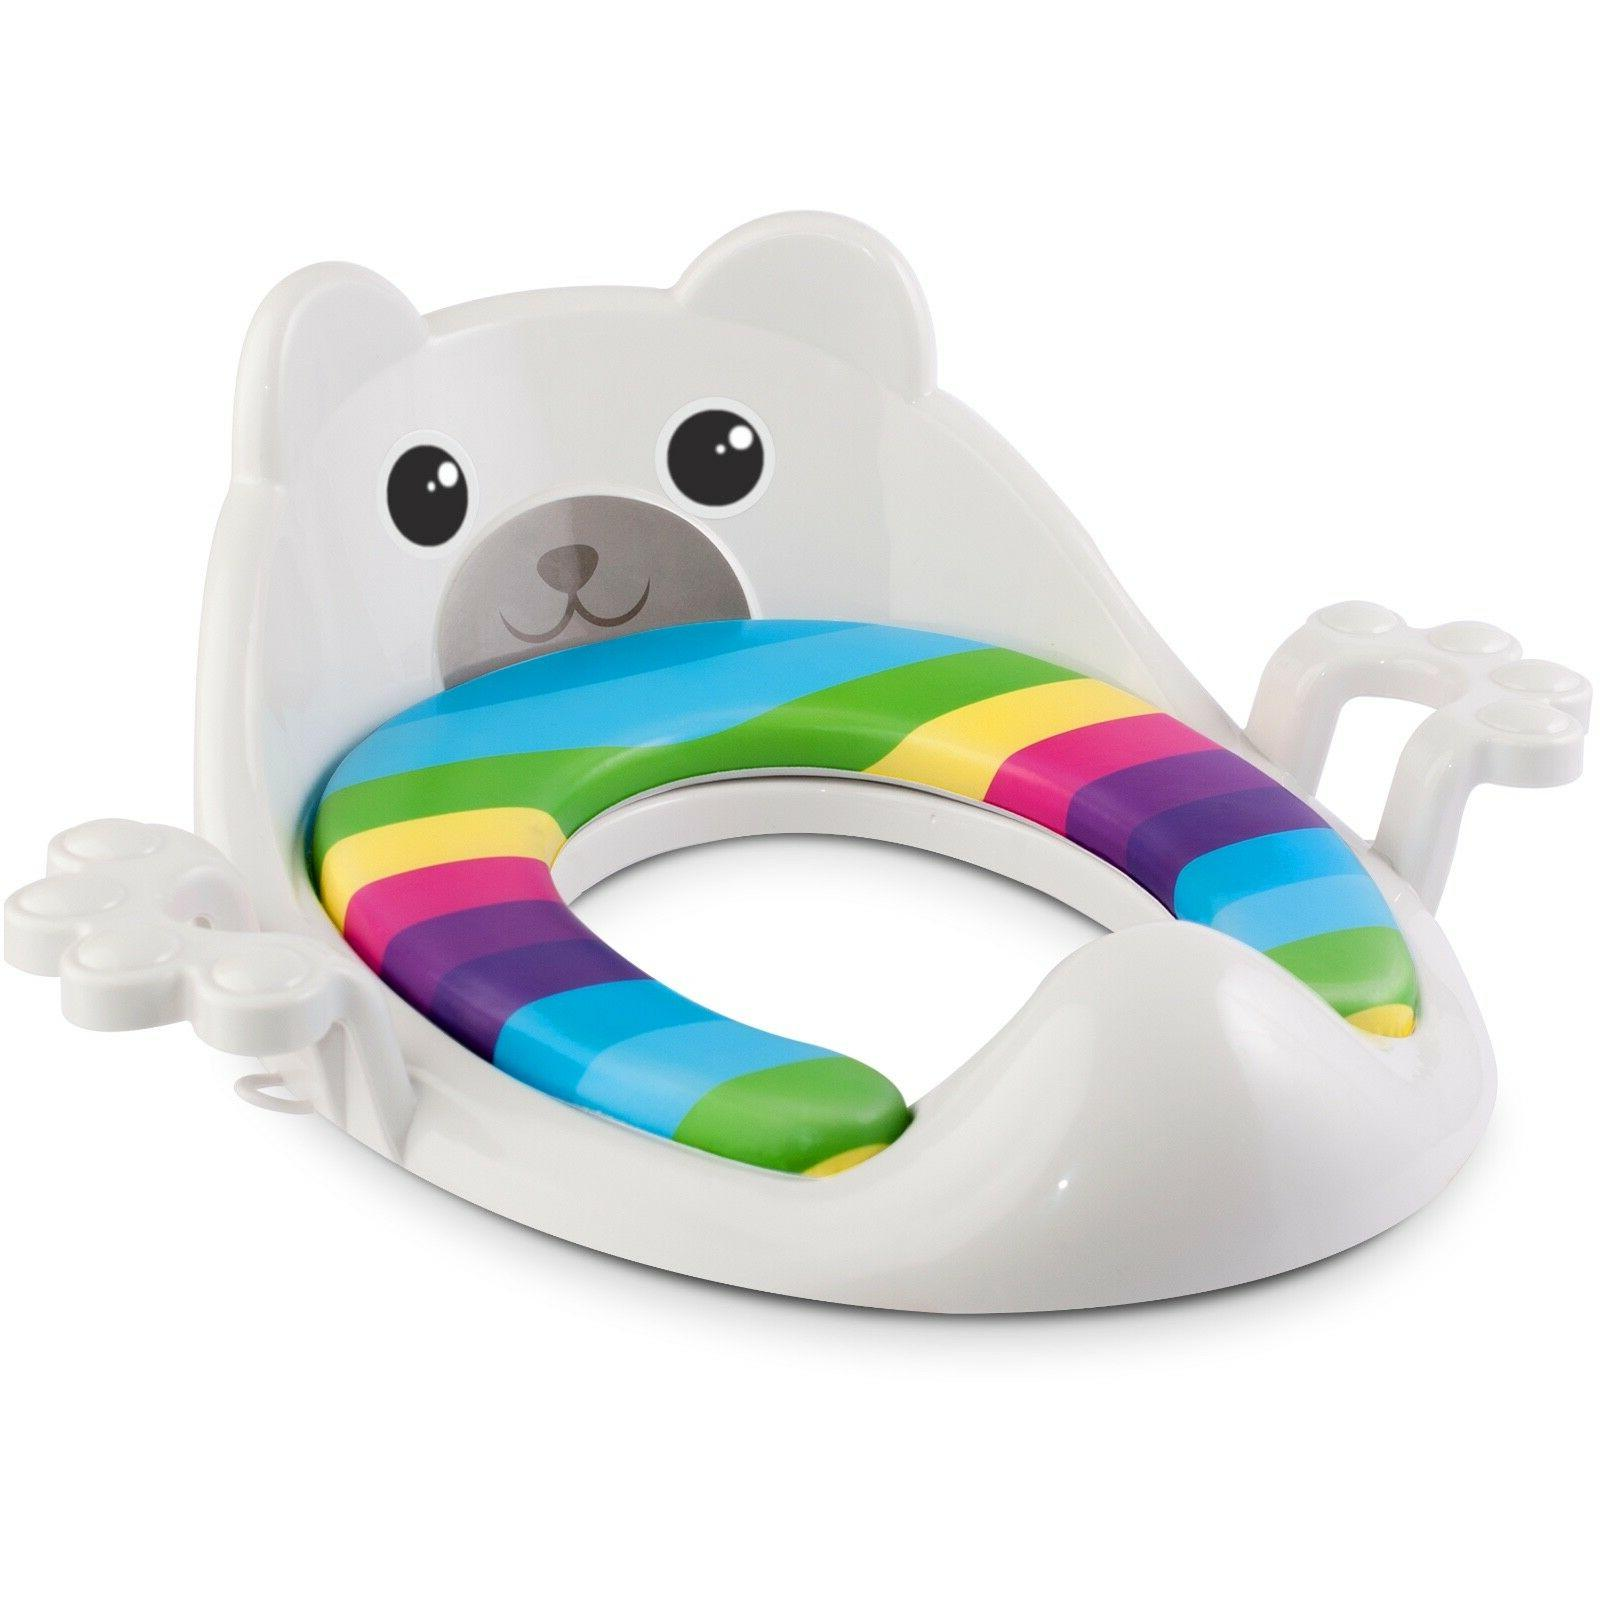 Potty Seat Toddlers Guard Round Oval Toilet